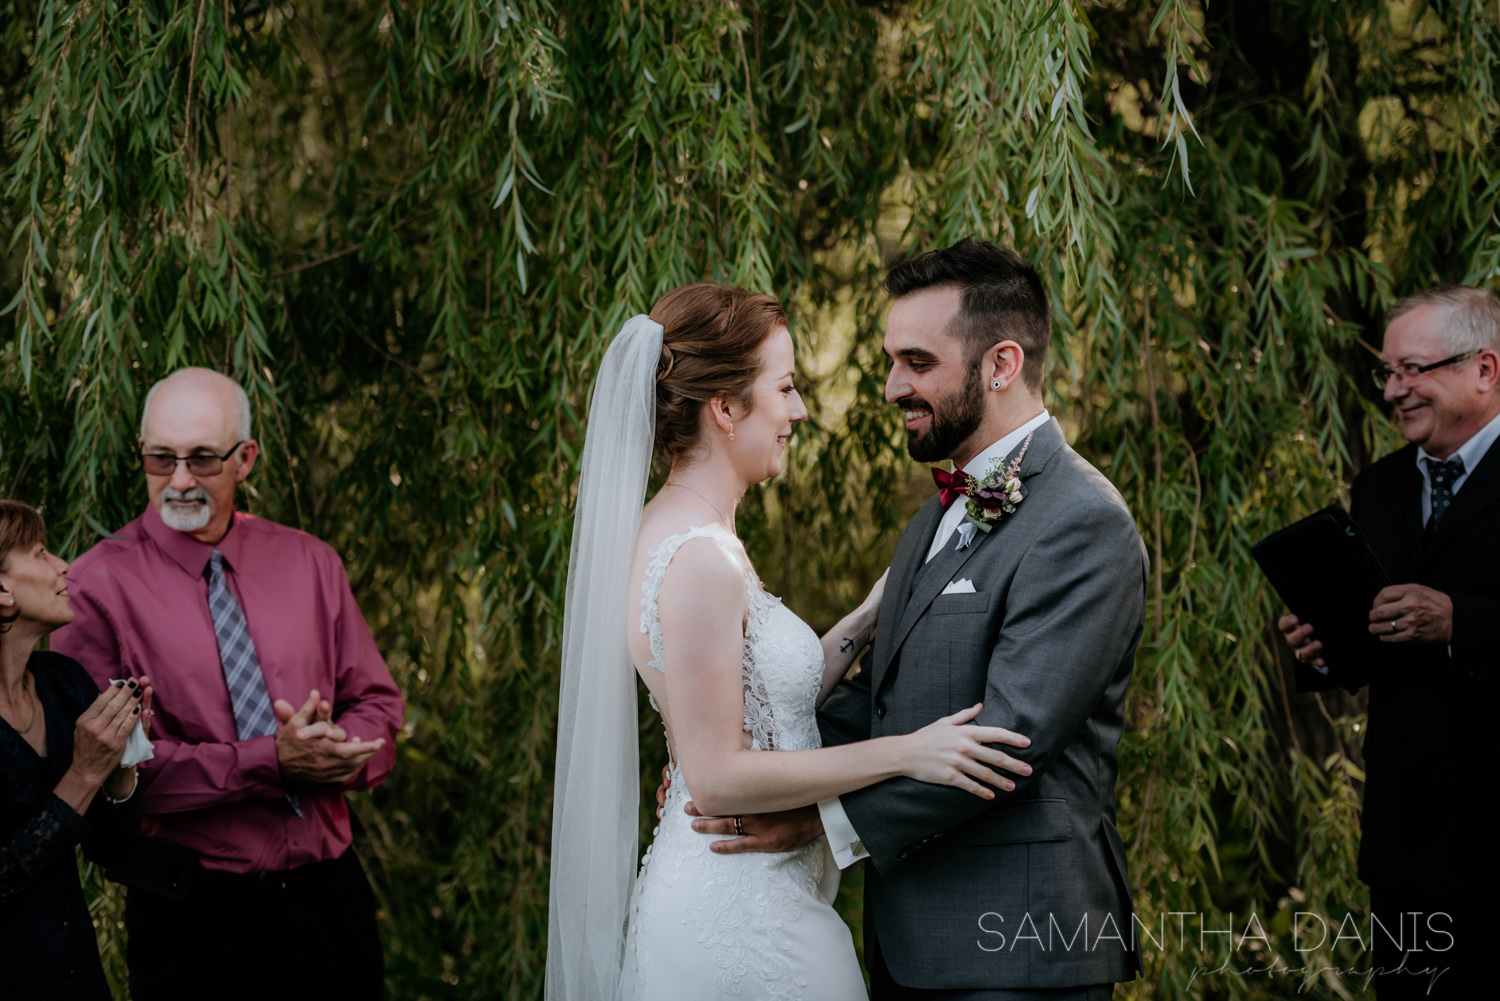 that first look you give each other afte rbeing pronounced husband and wife. Ottawa Wedding Photographer.